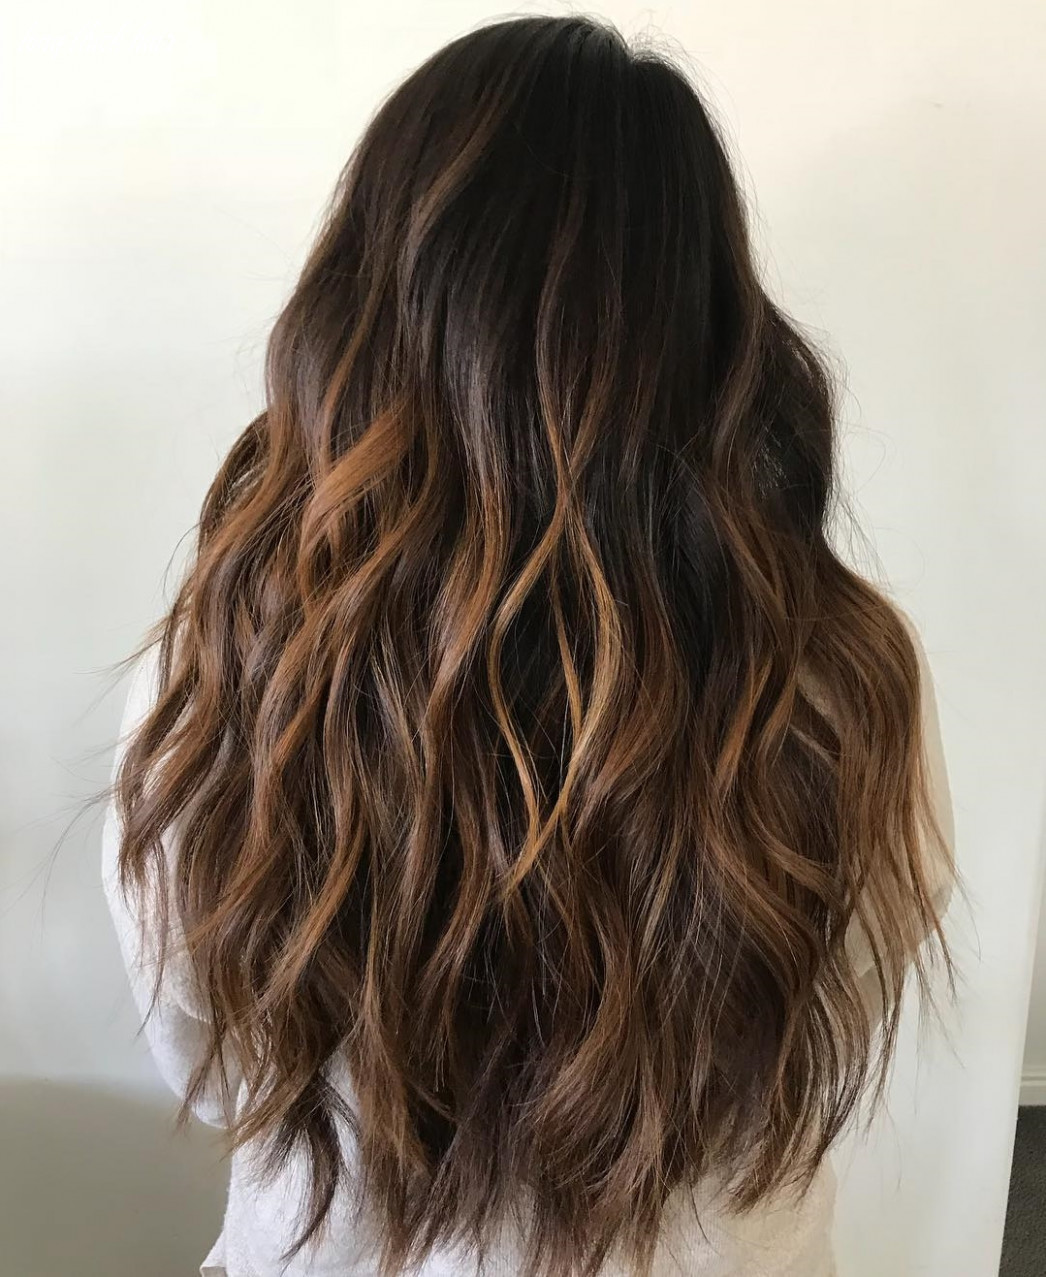 11 haircuts for thick wavy hair to shape and alleviate your